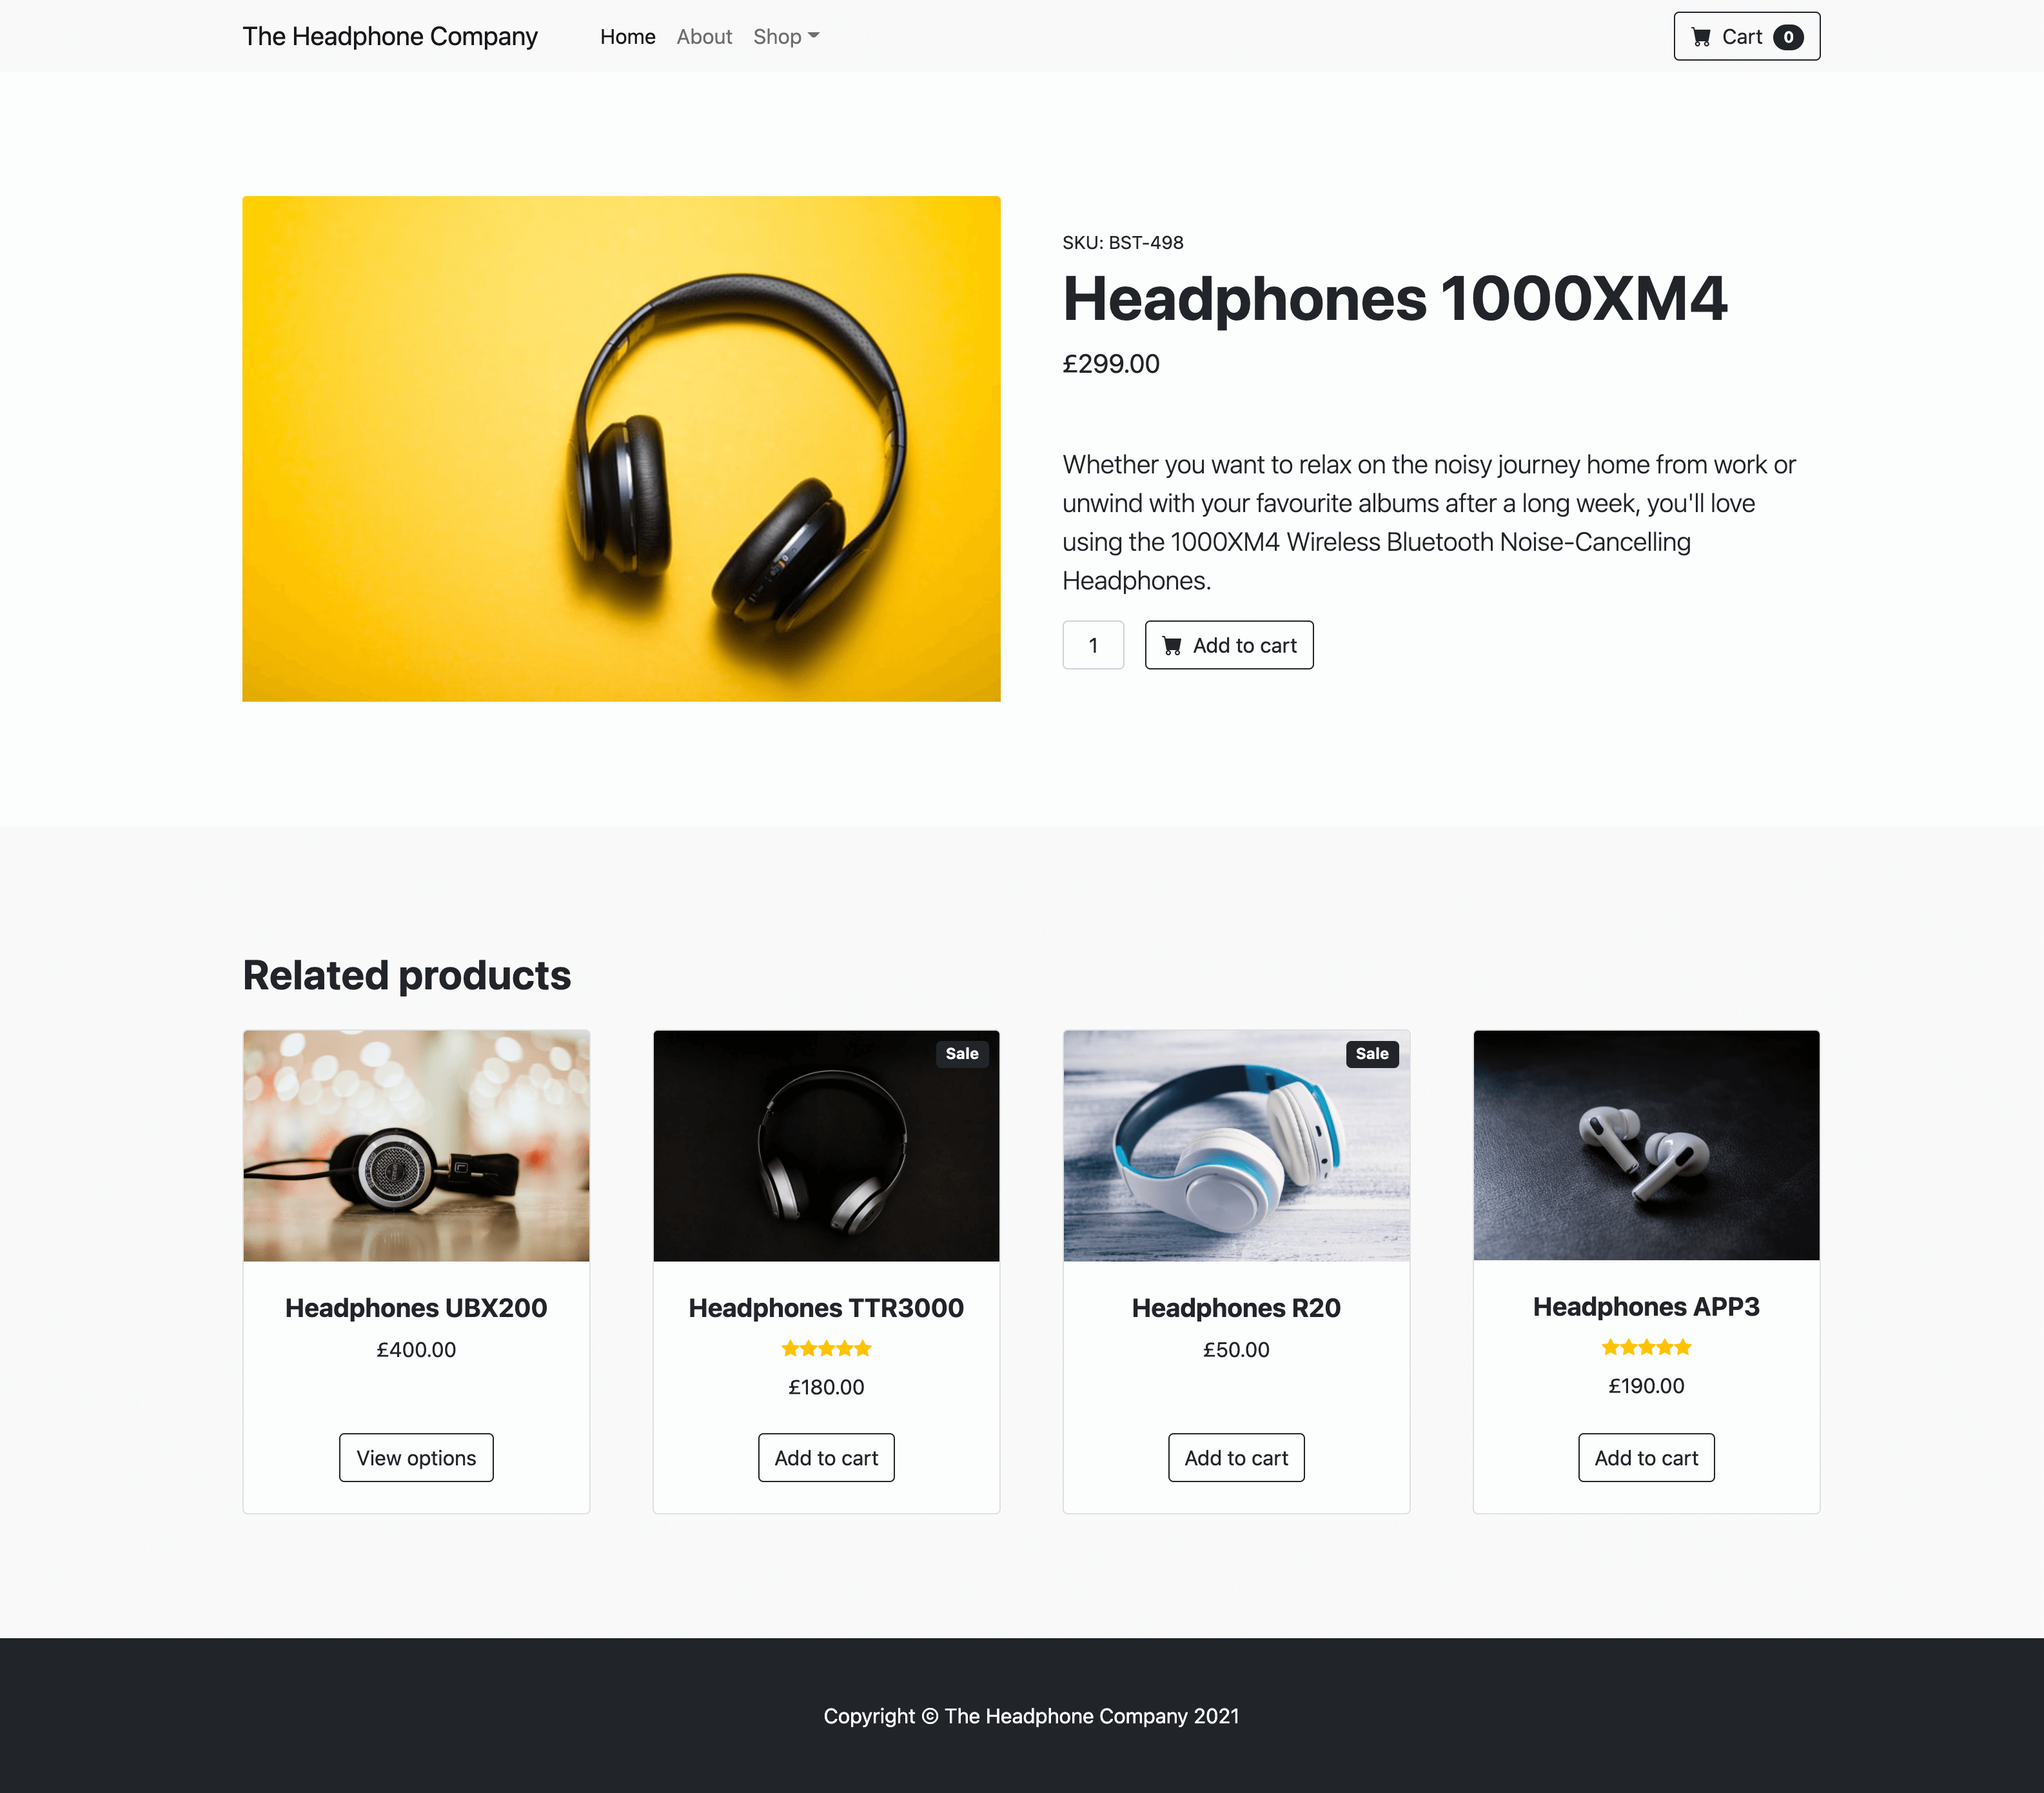 Website version A - Example website called The Headphone Company. Headphone product page.